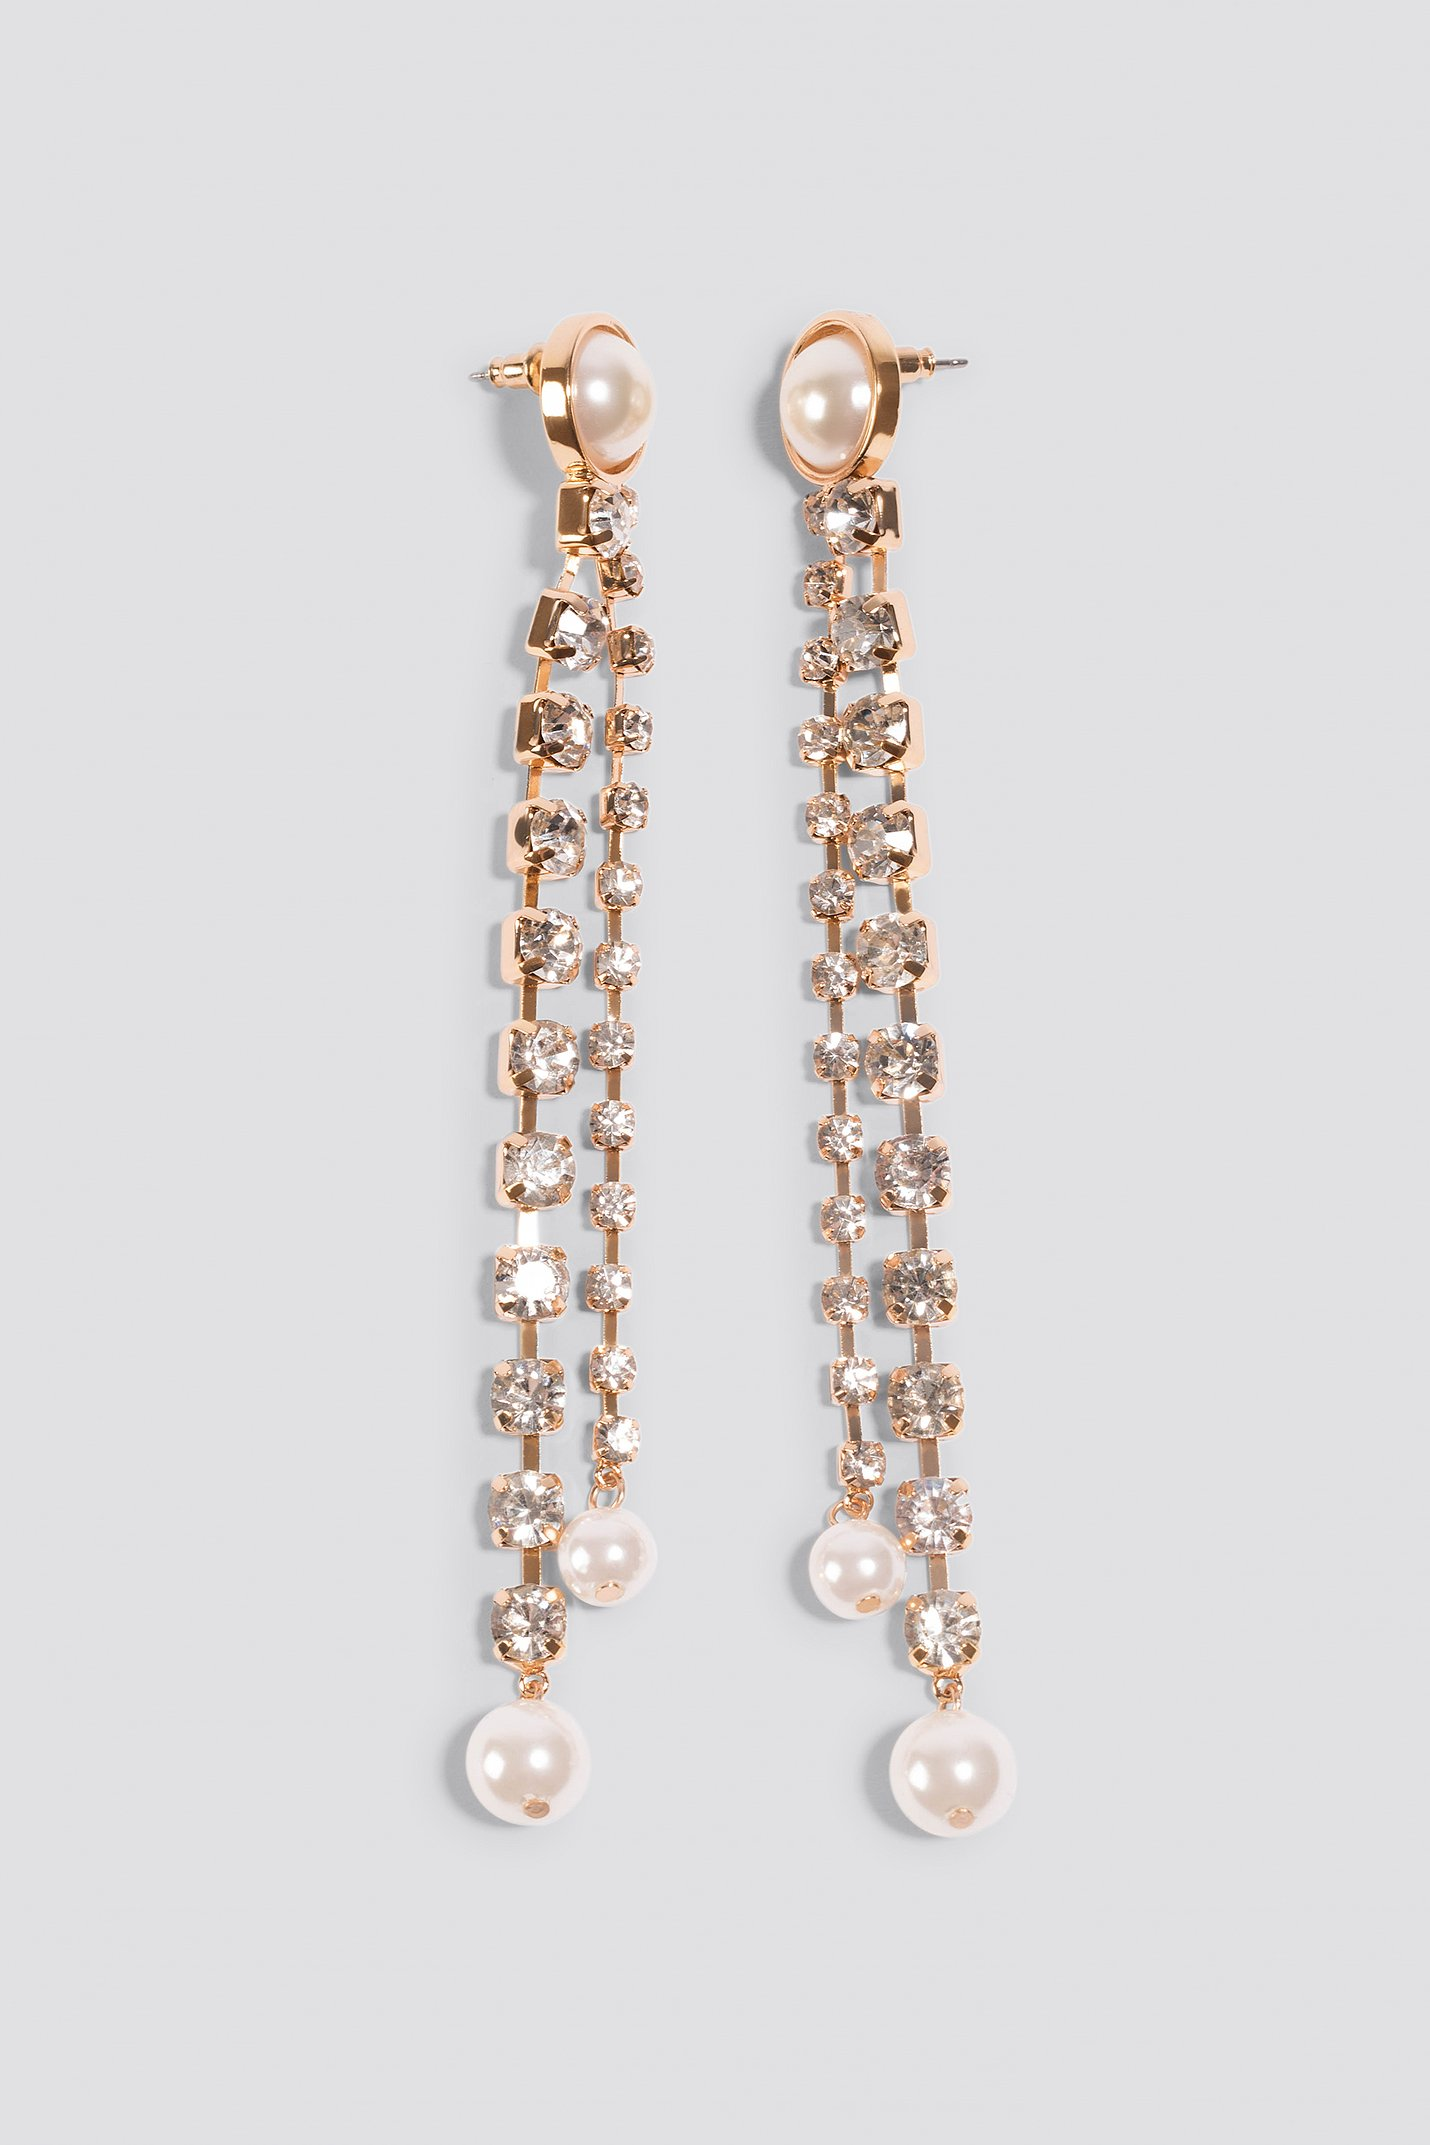 Gold Hanging Rhinestone Pearl Earrings